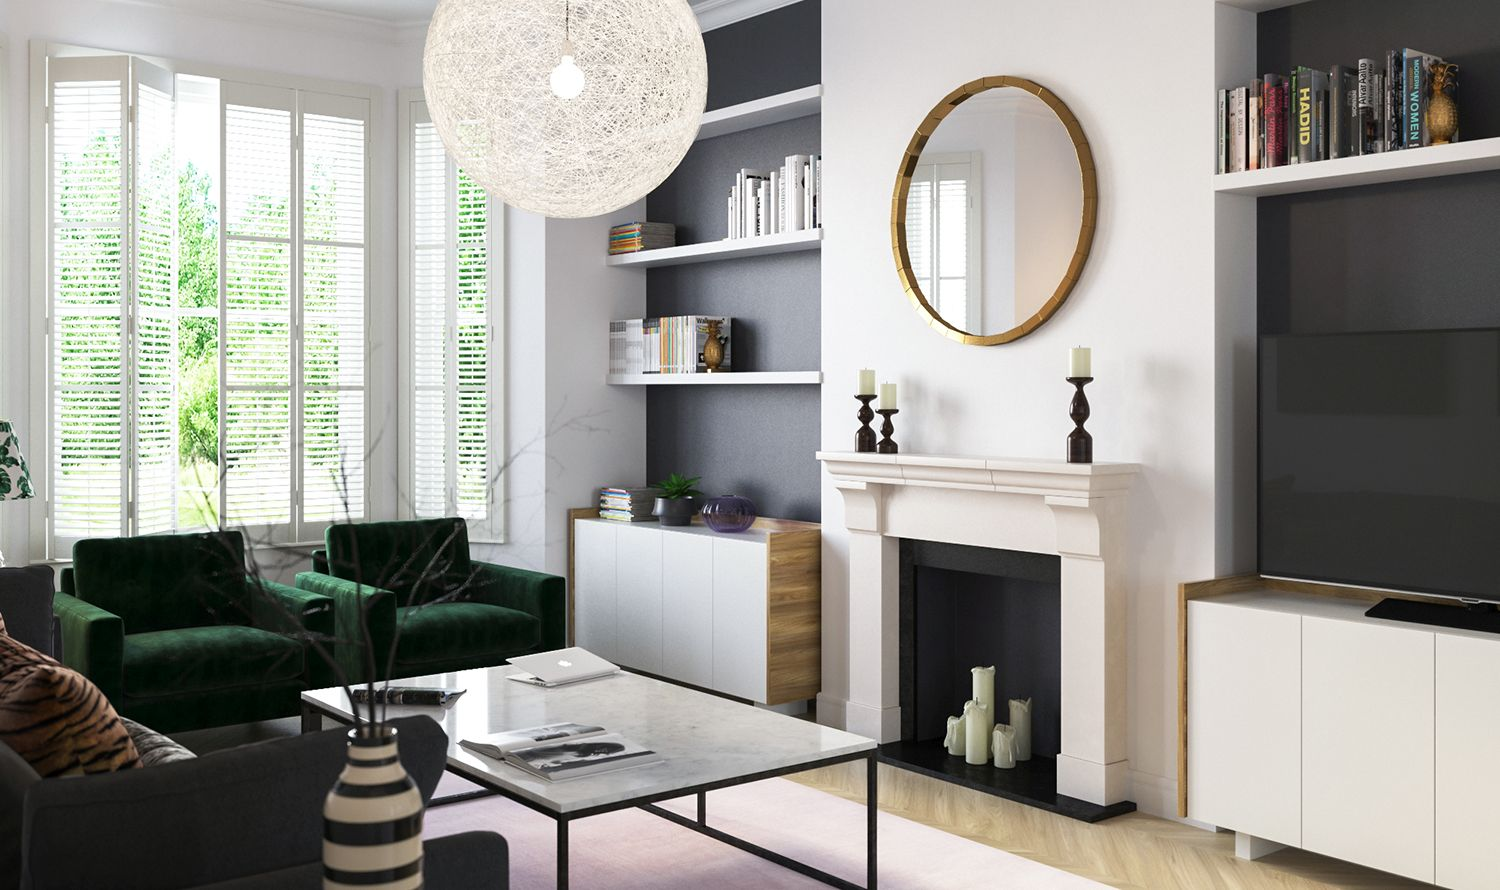 captivating modern eclectic living room | Contemporary Eclectic Interior Design